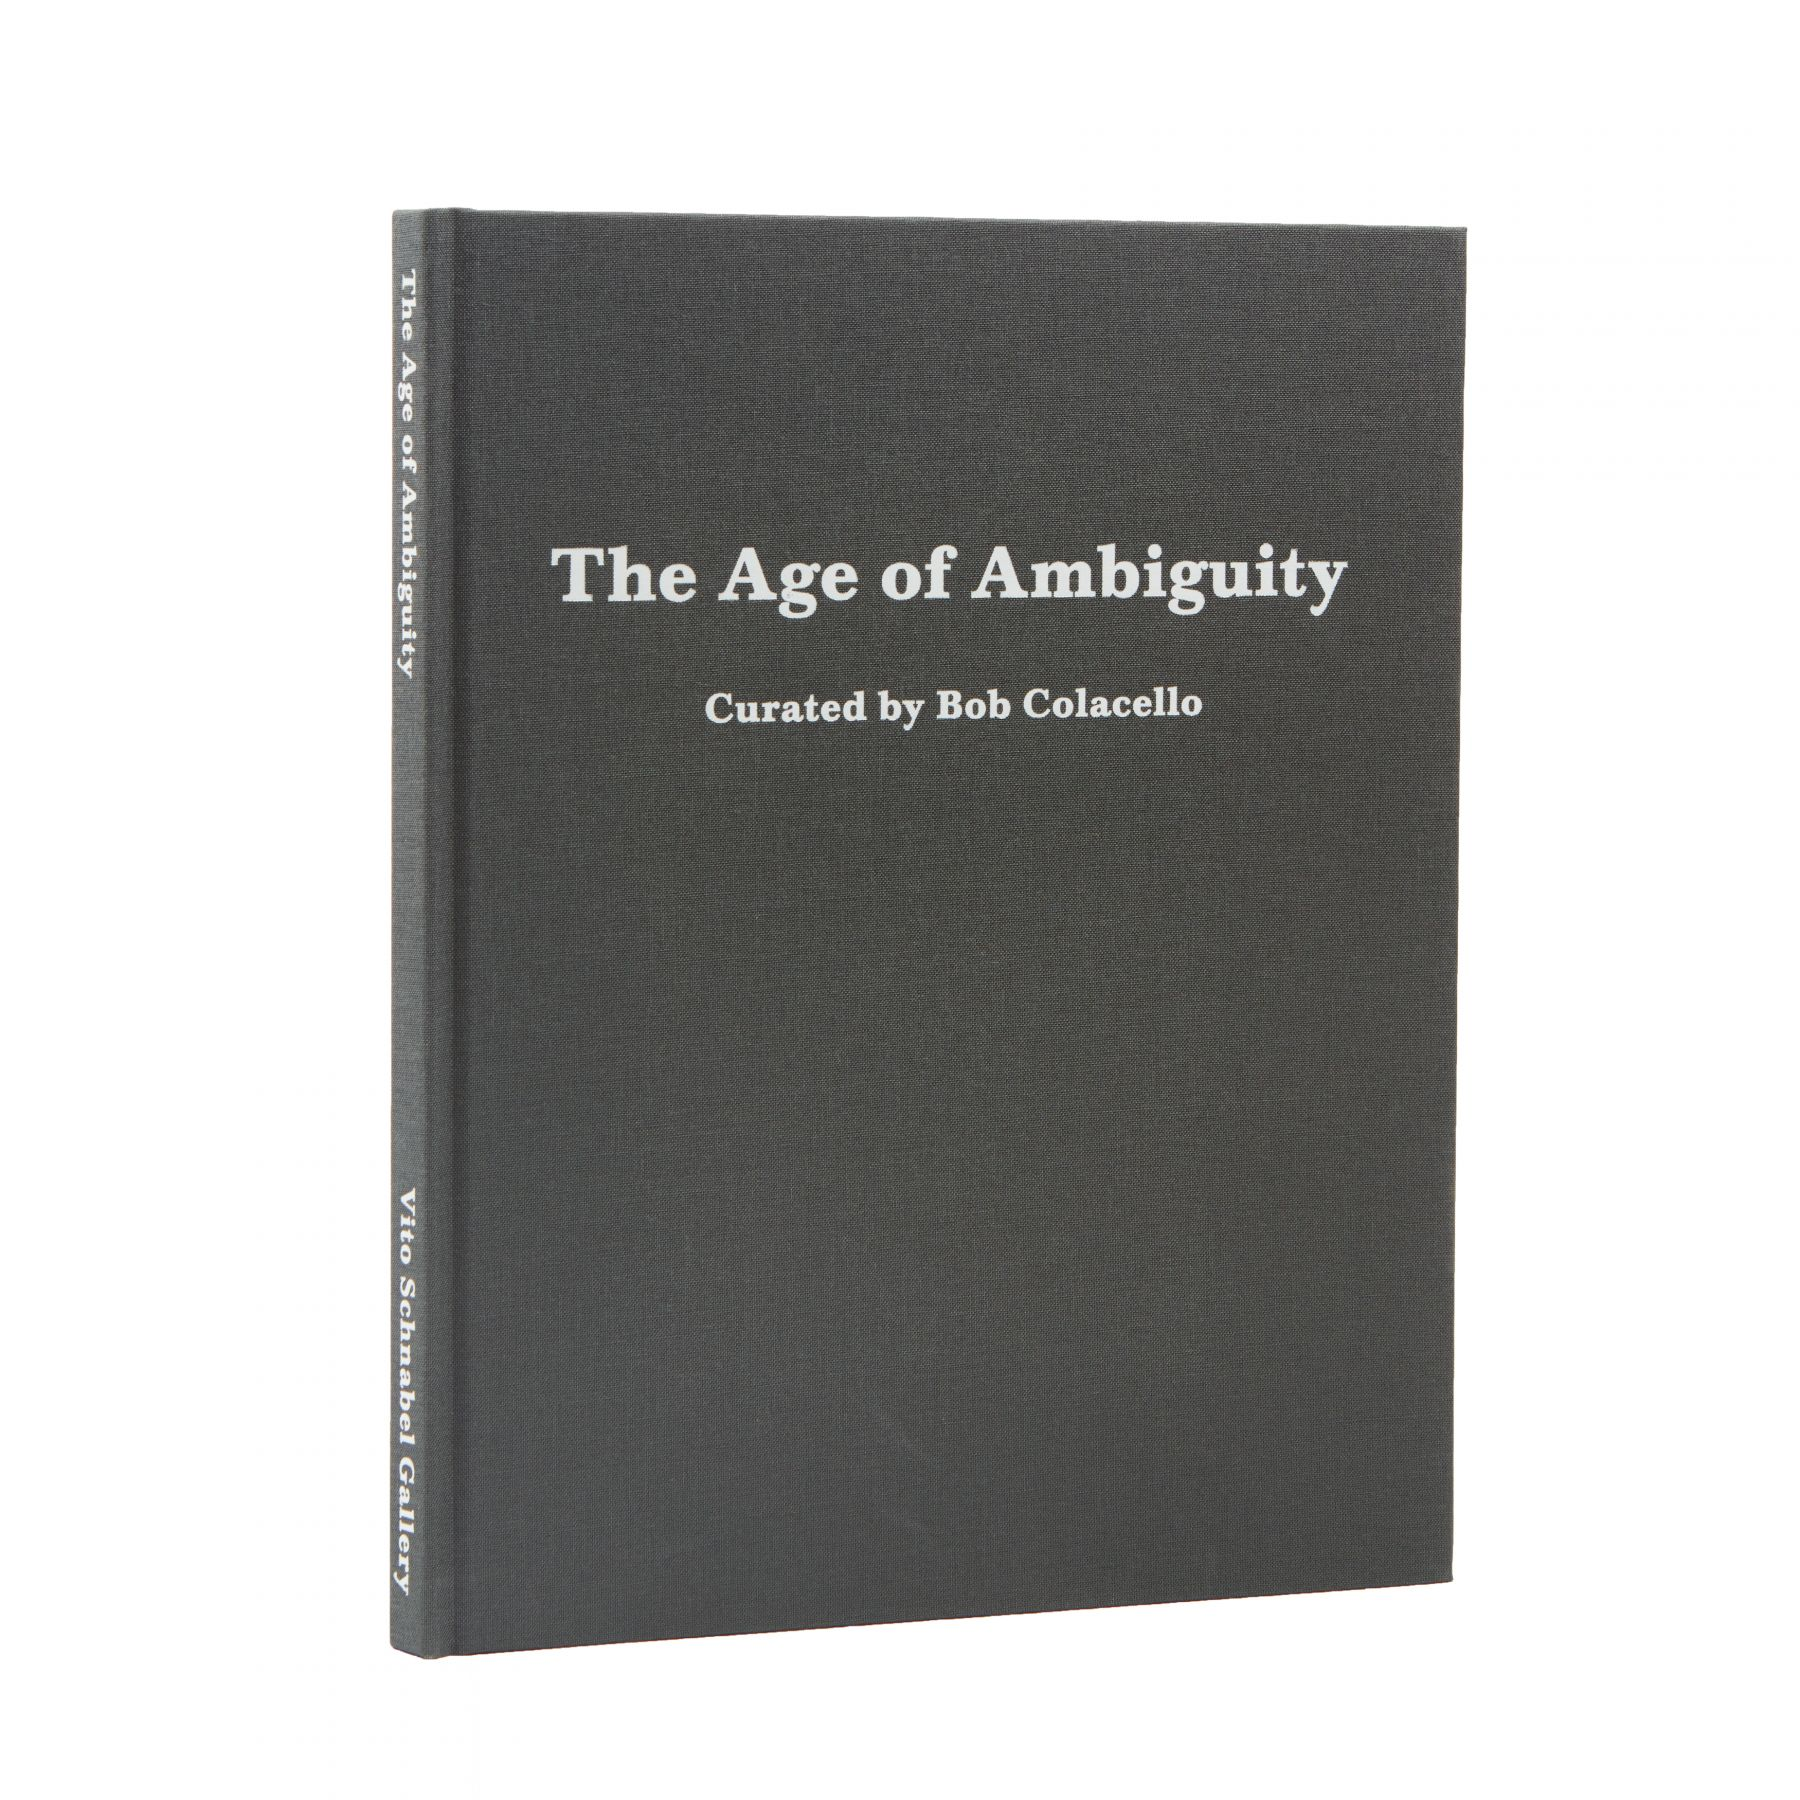 The Age of Ambiguity